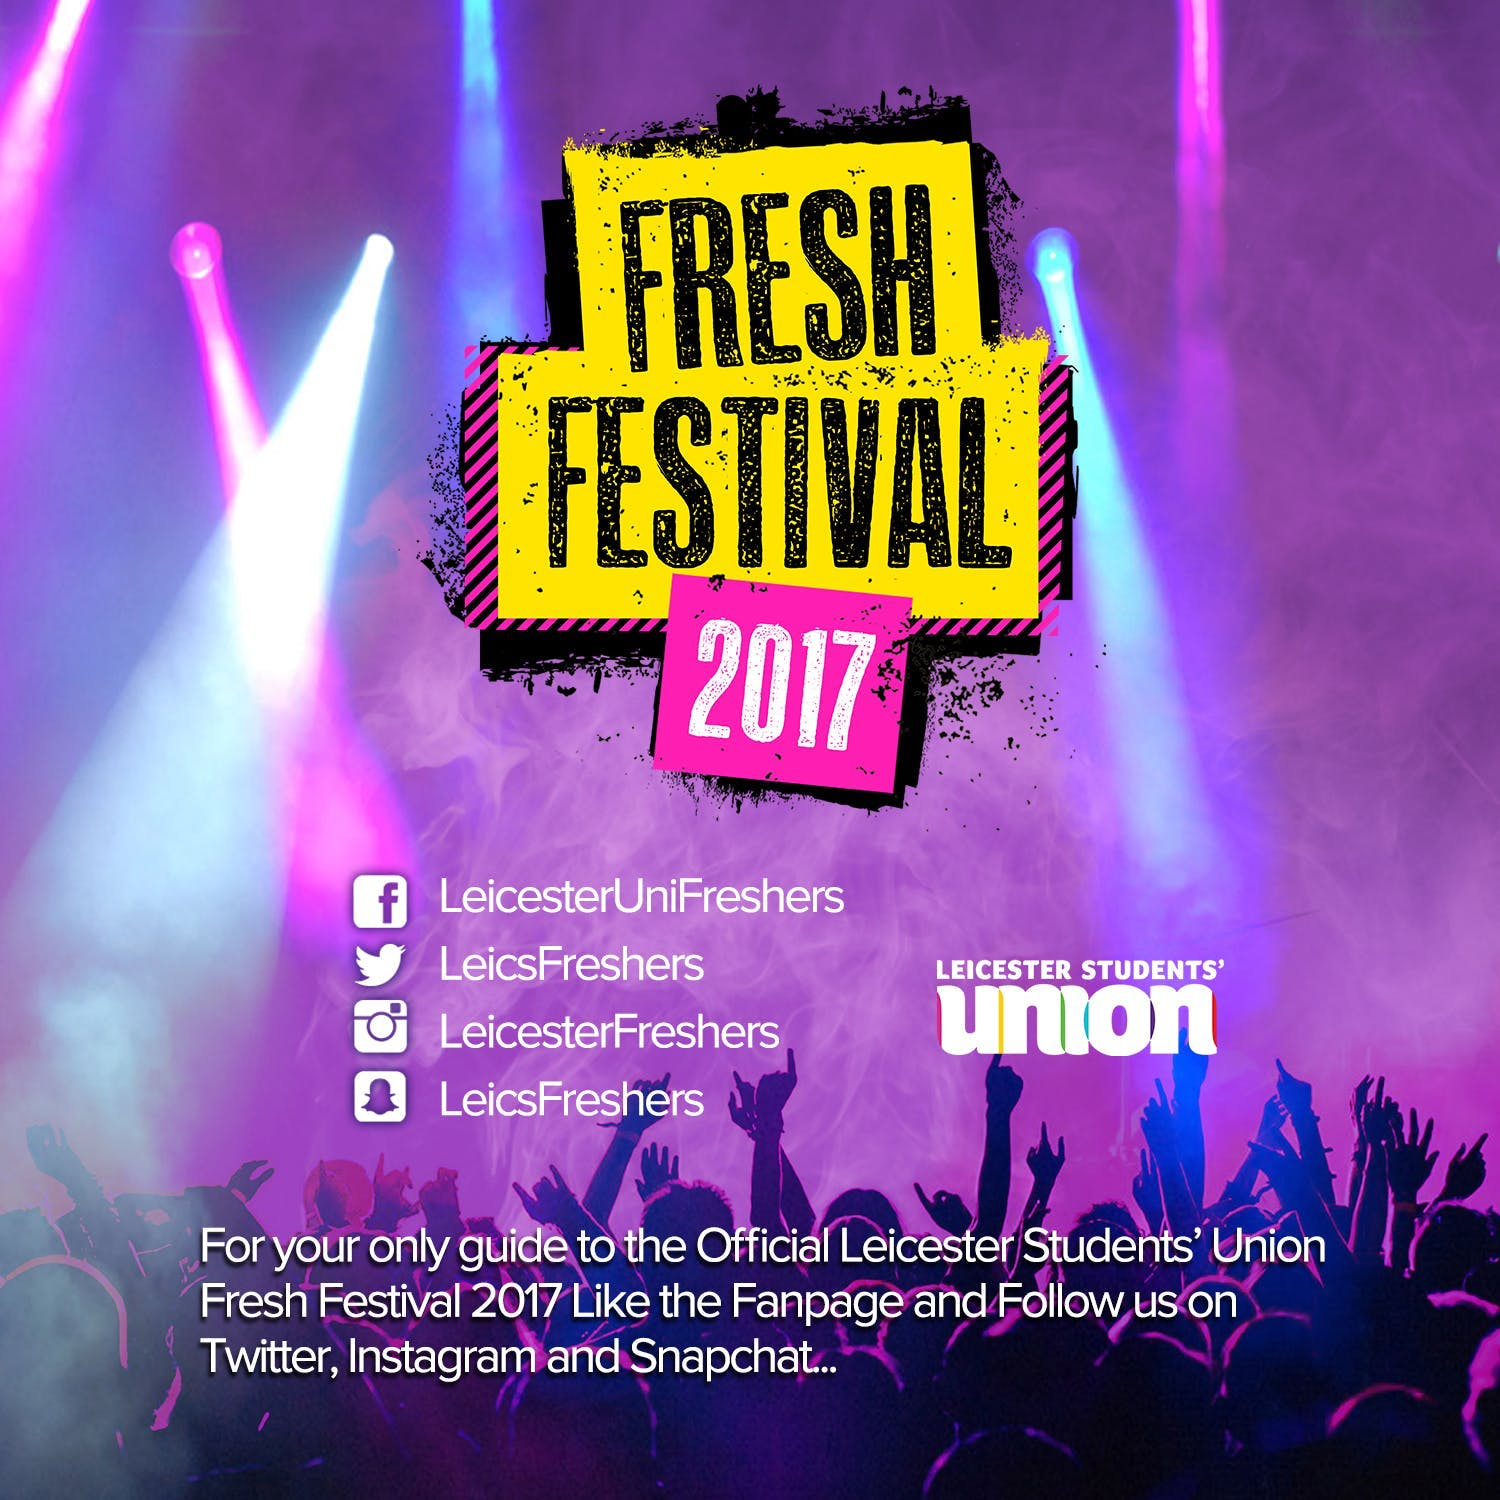 New website launched for Freshers 2017!